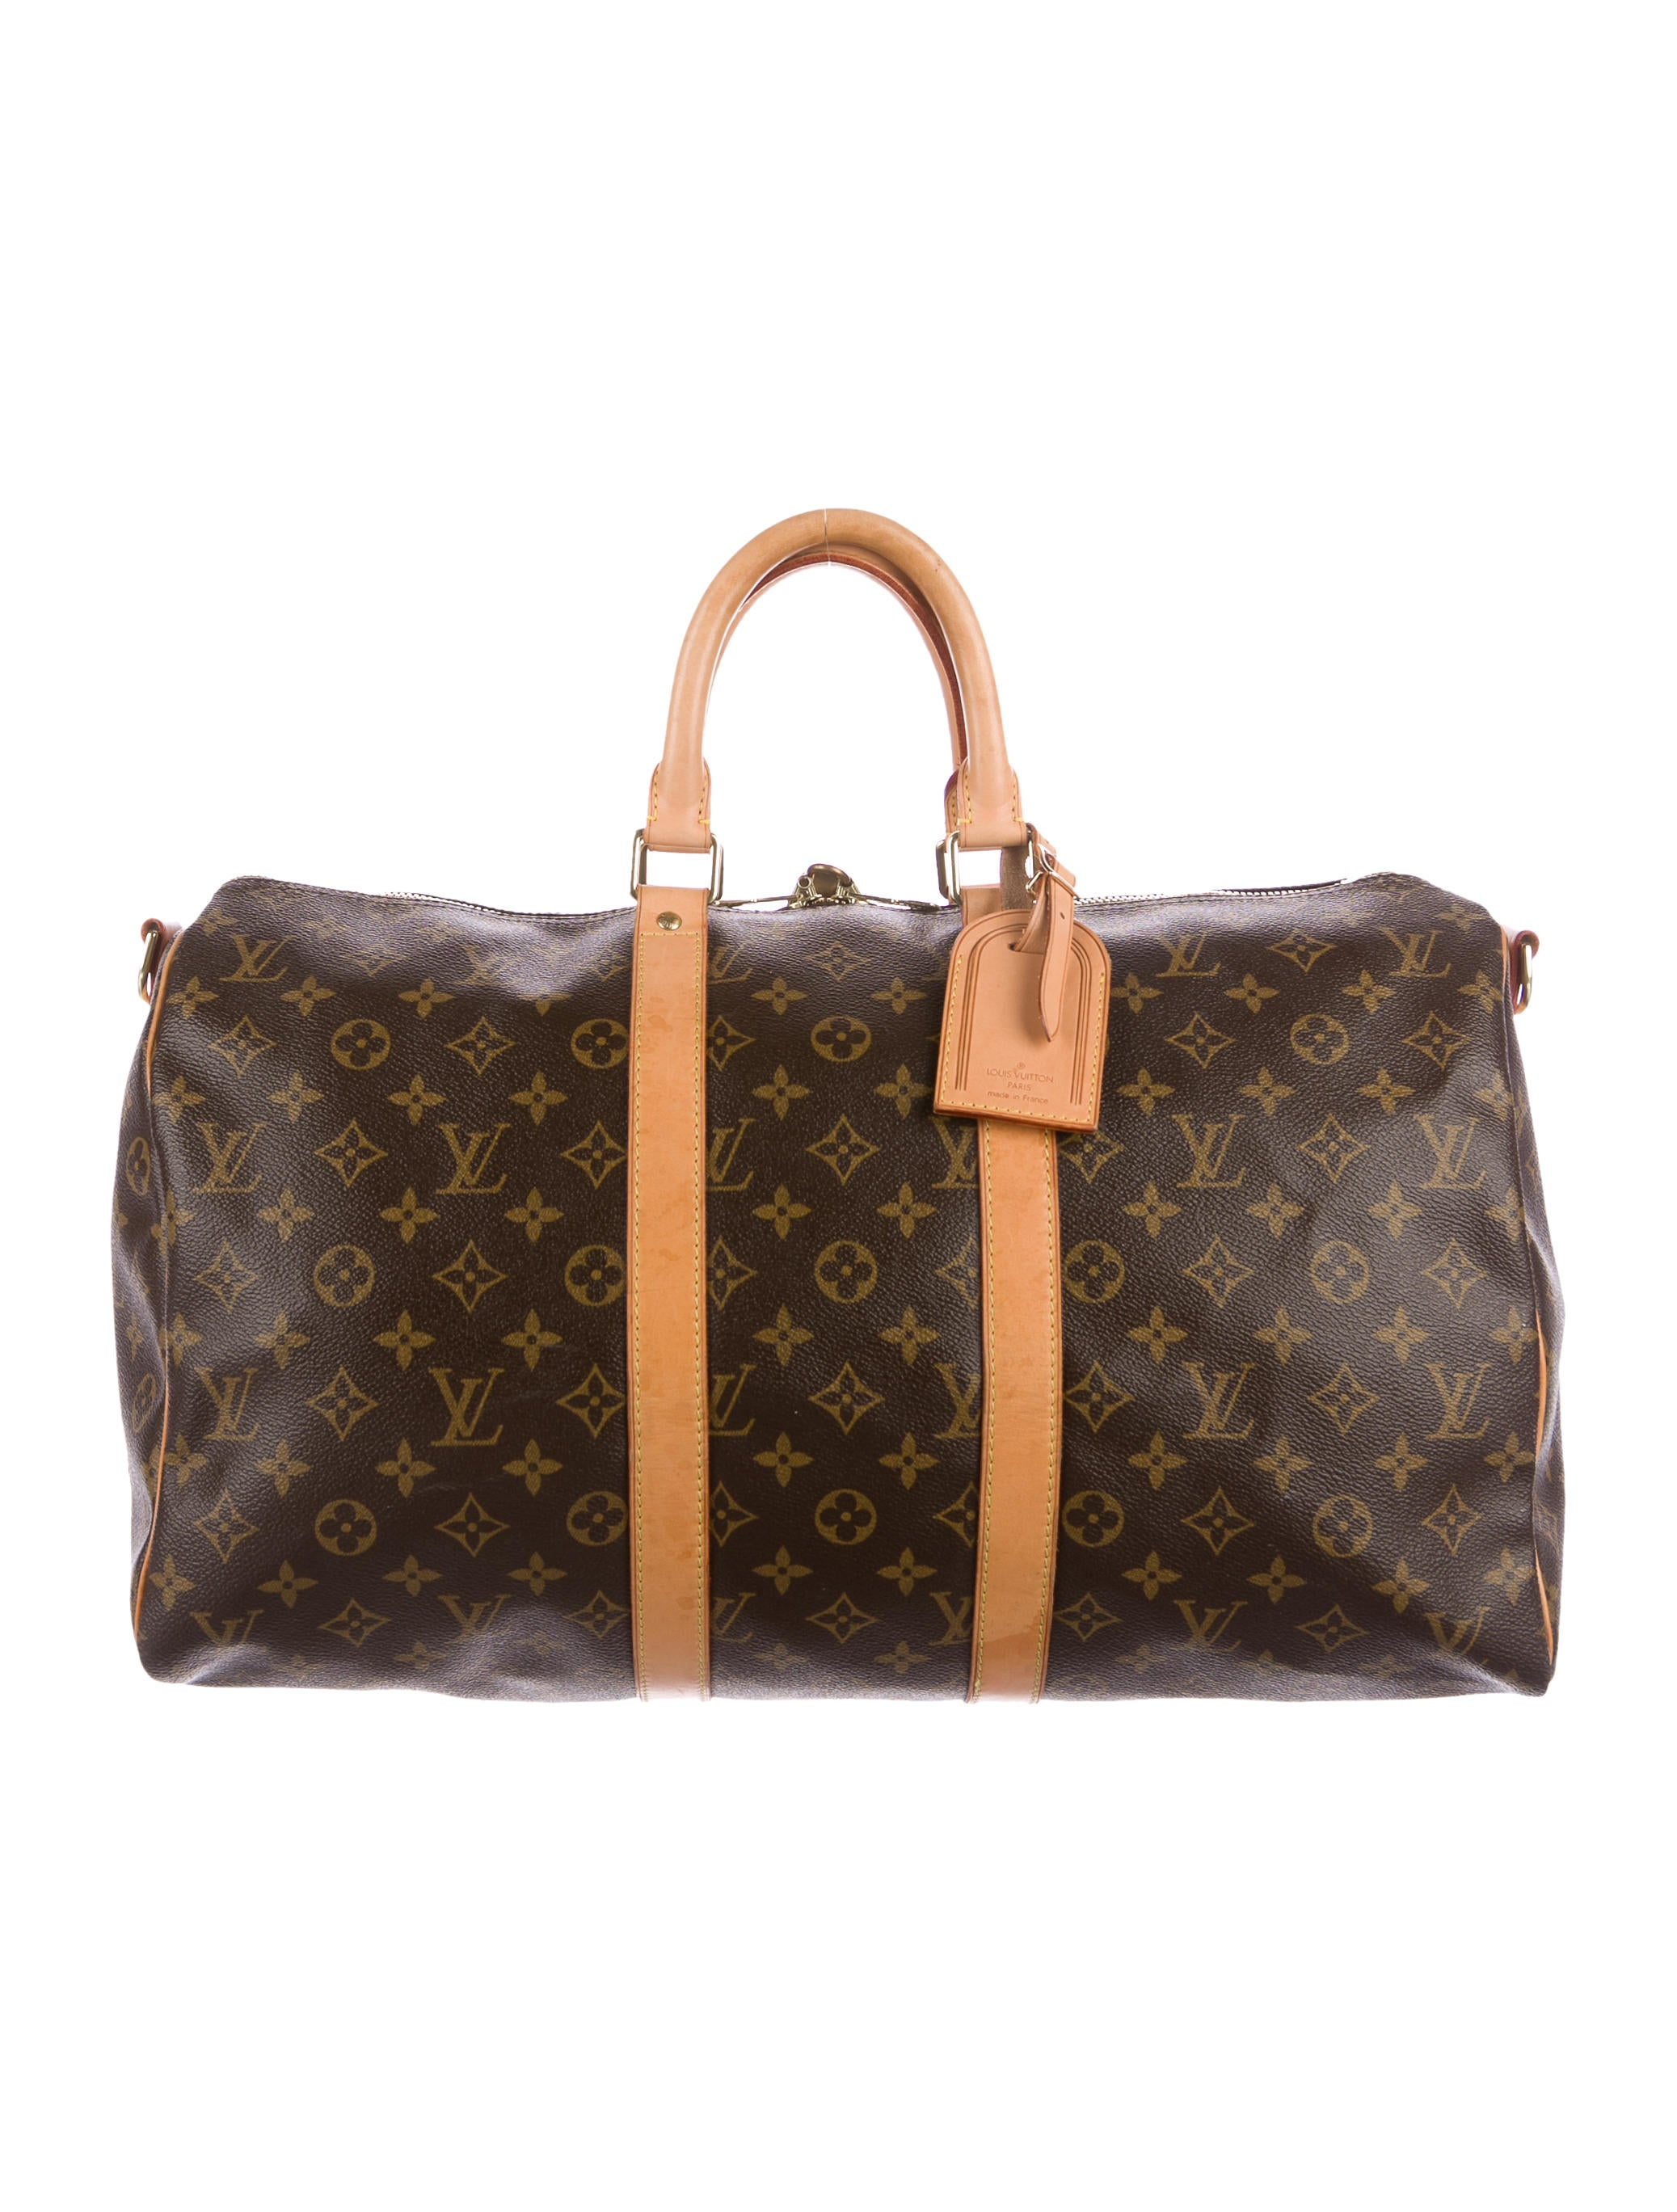 louis vuitton monogram keepall bandouli re 45 bags lou126171 the realreal. Black Bedroom Furniture Sets. Home Design Ideas